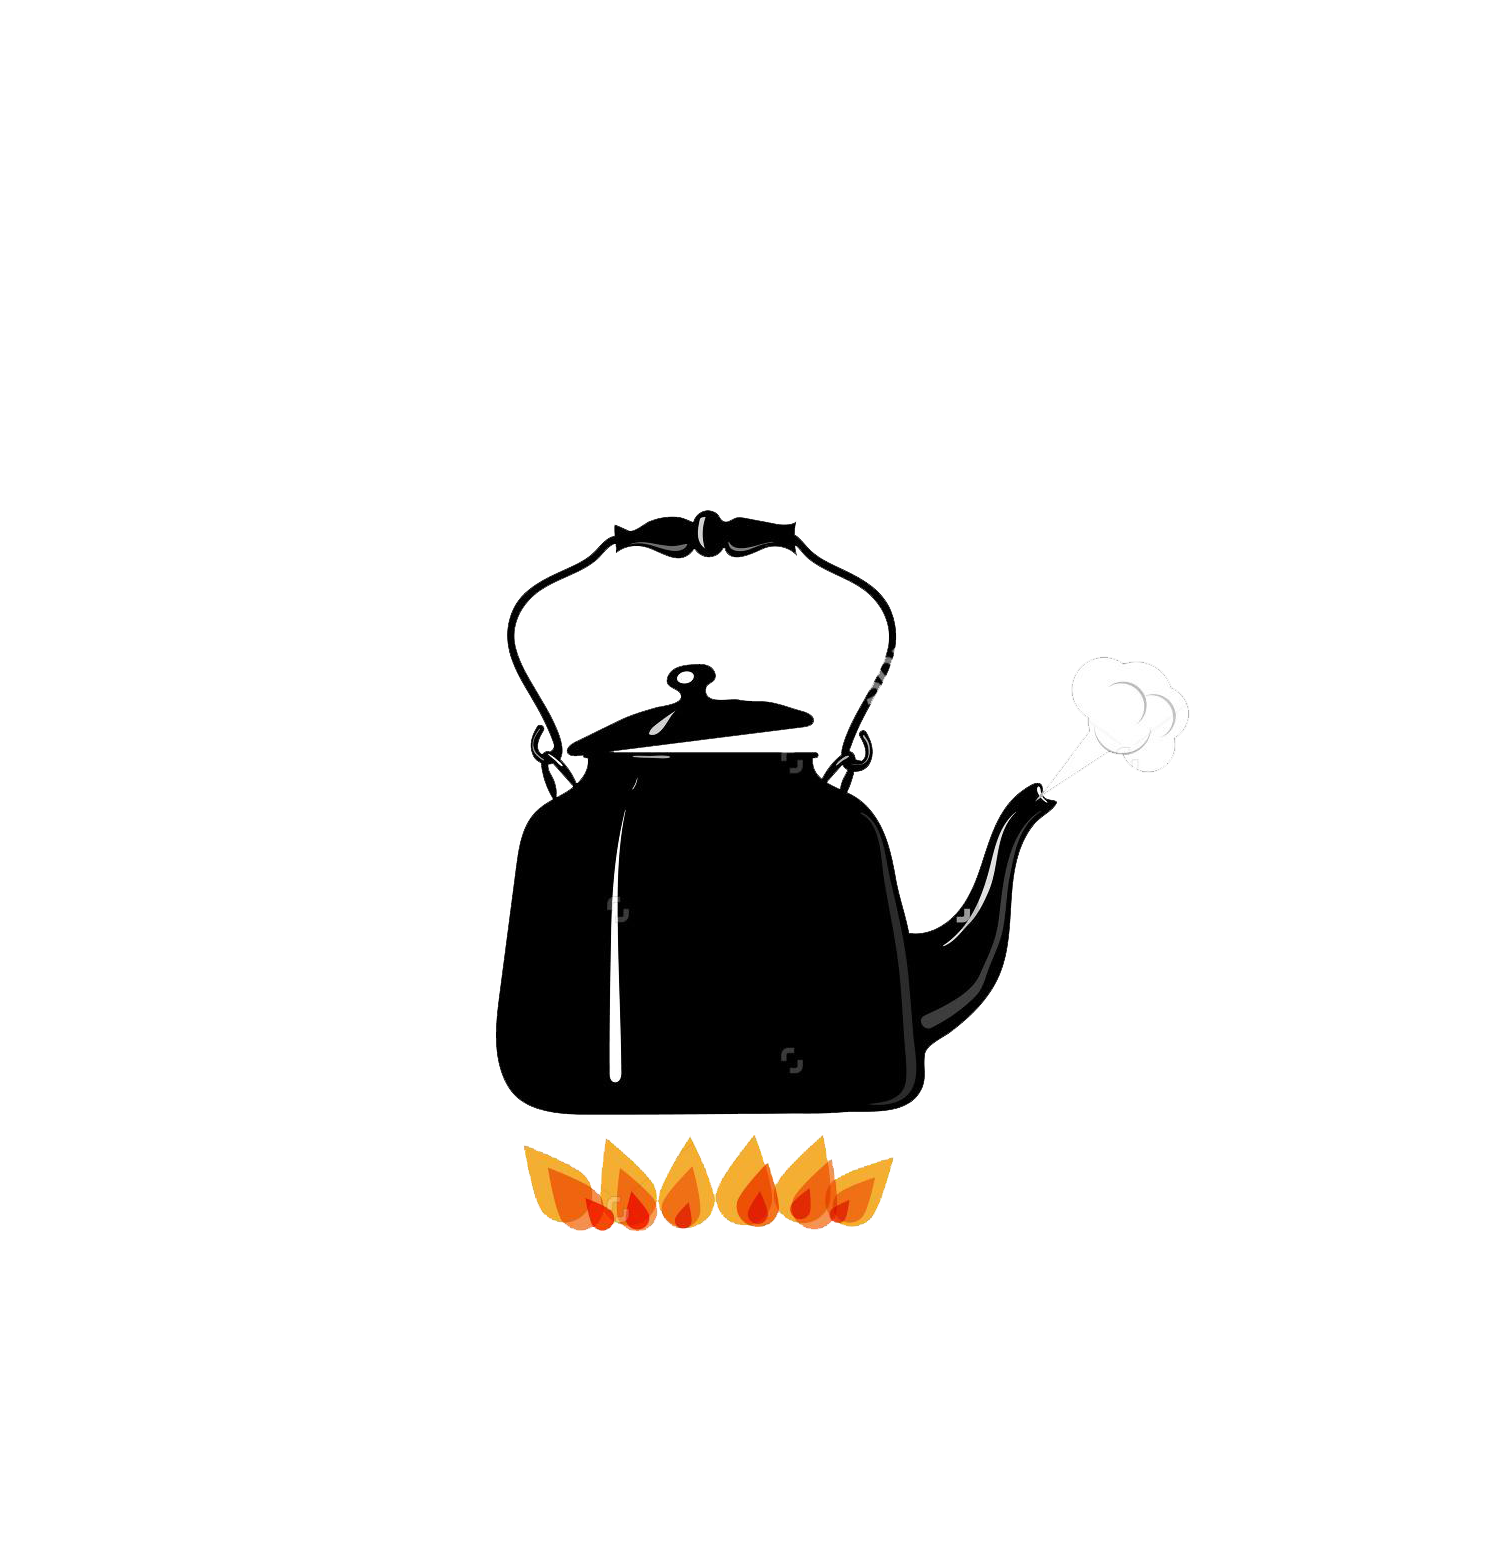 Boiling kettle fire illustration. Fries clipart uses heat